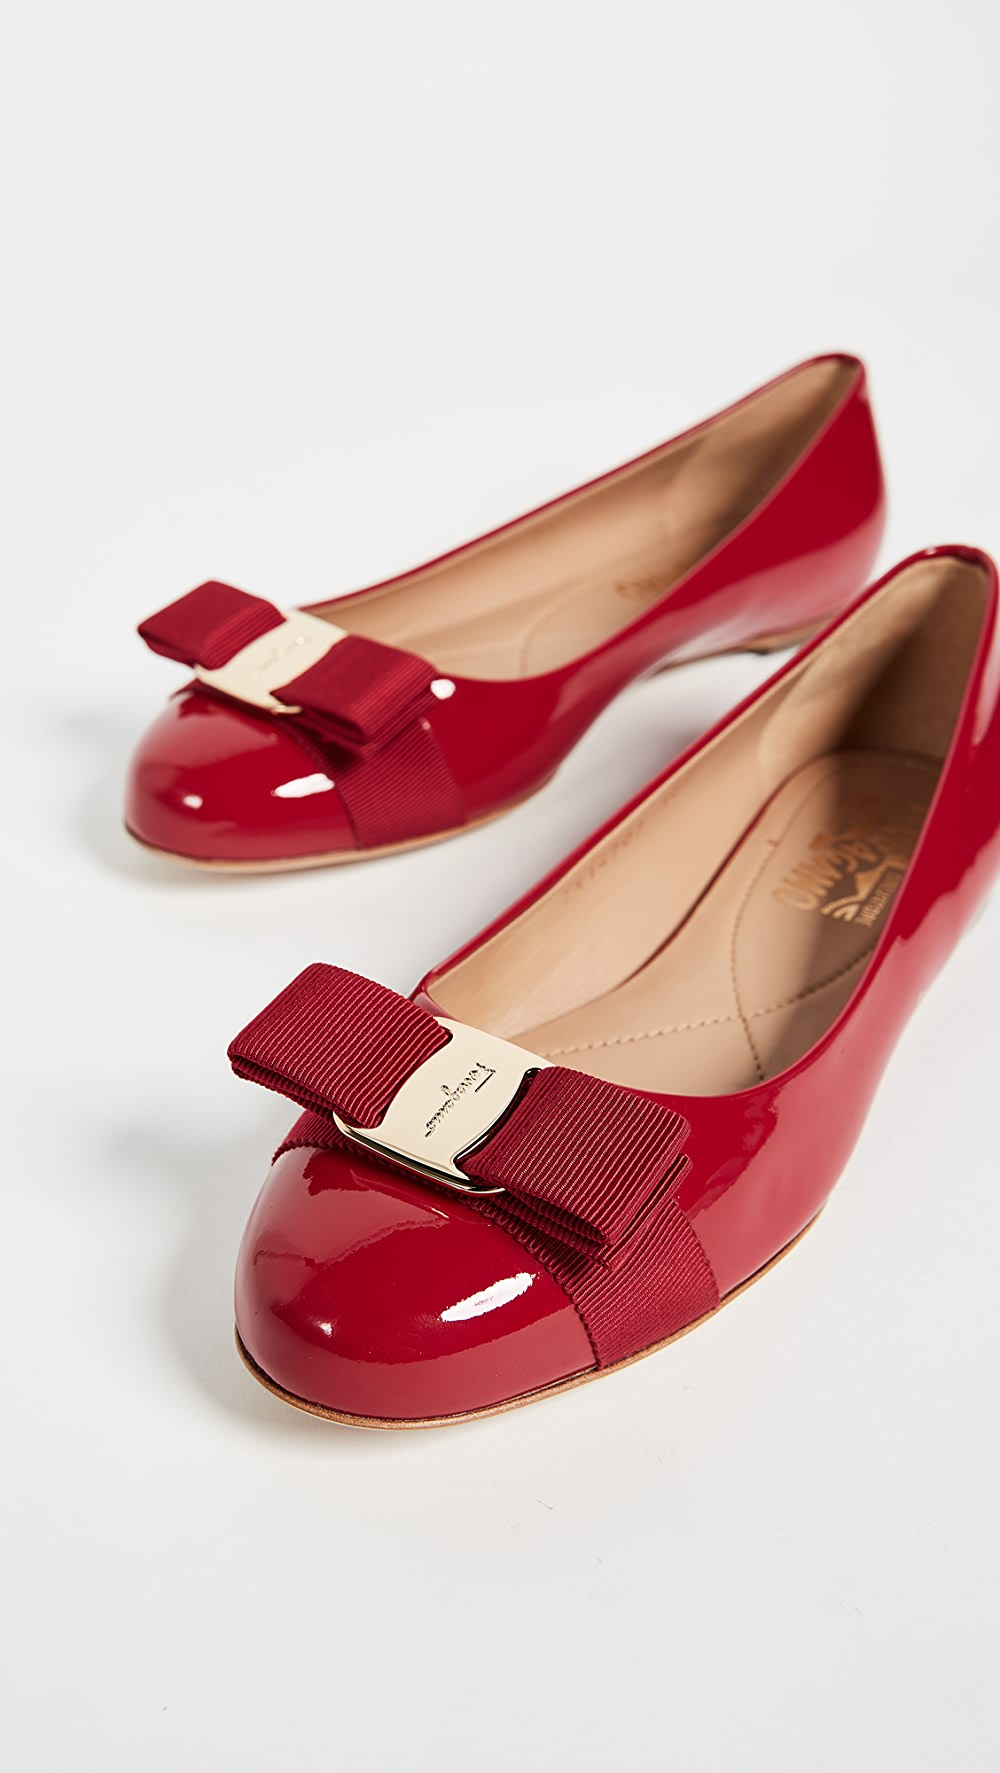 Logical Salvatore Ferragamo - Varina Flats Strong Packing